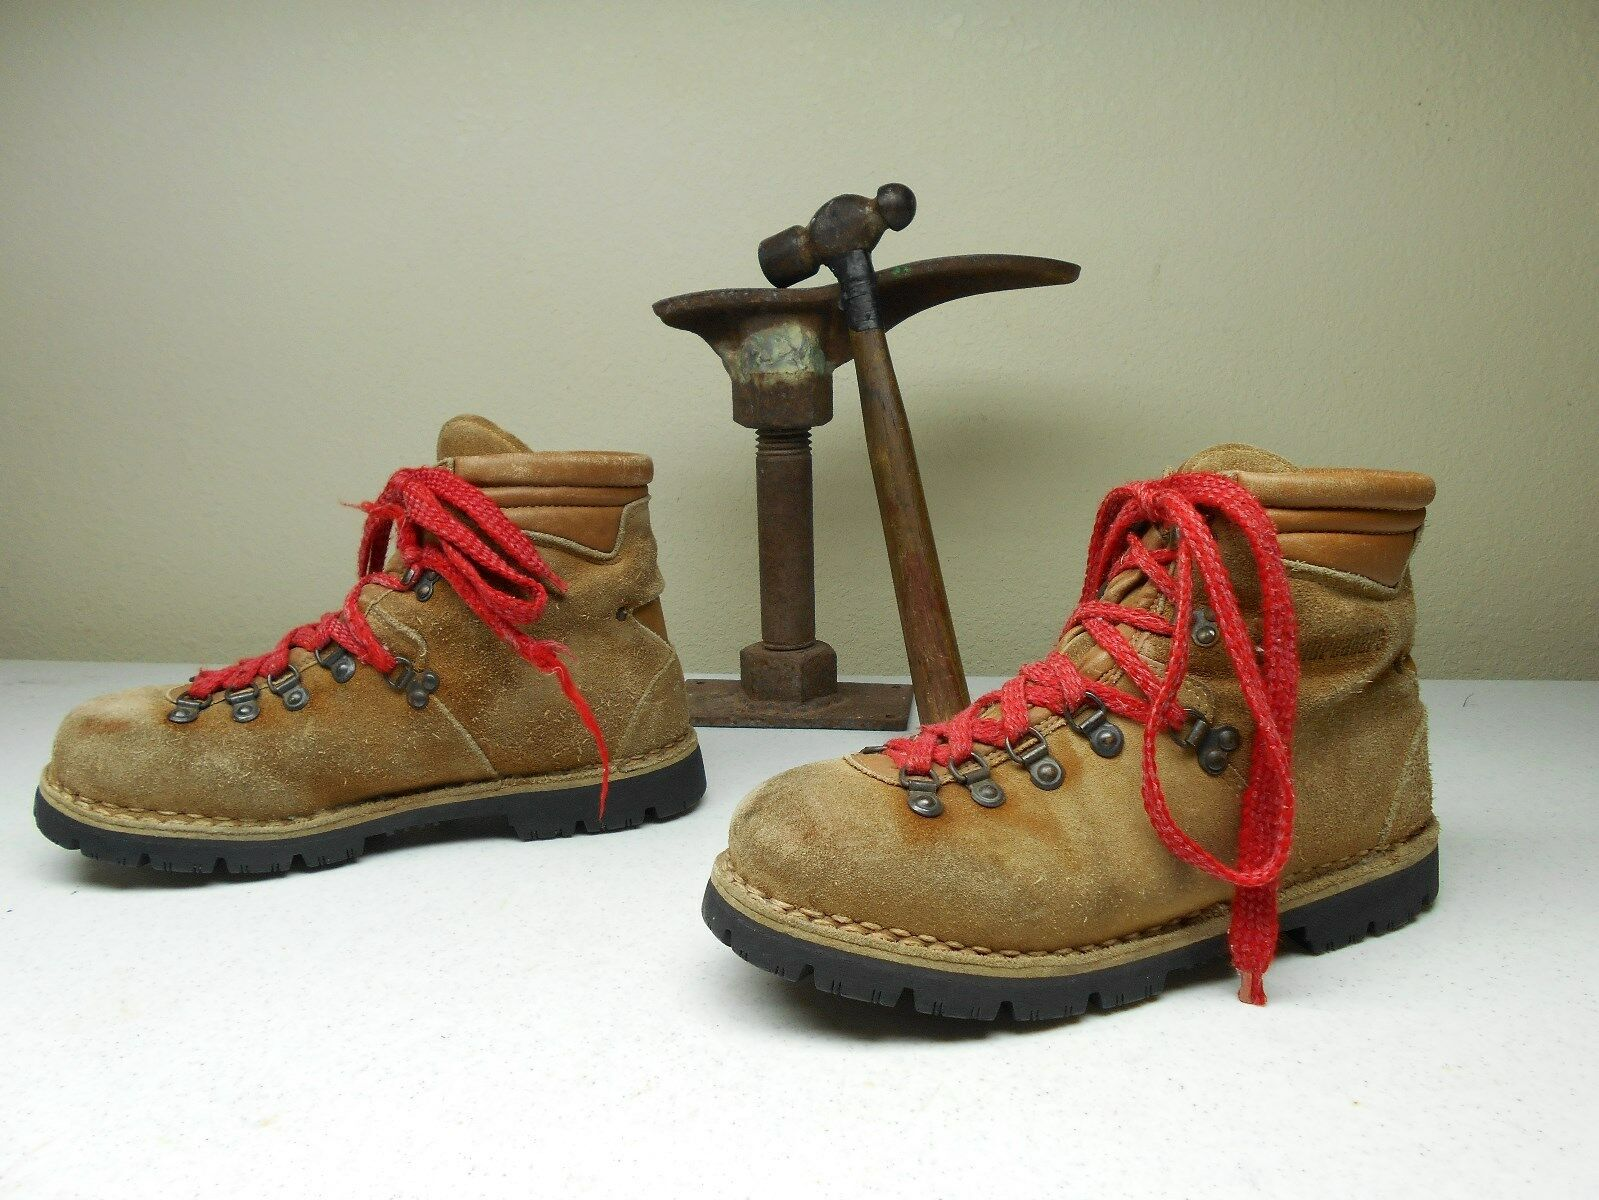 VINTAGE BROWN DISTRESSED GROUNDBREAKERS made in ITALY MOUNTAIN BOOTS 10/11 E